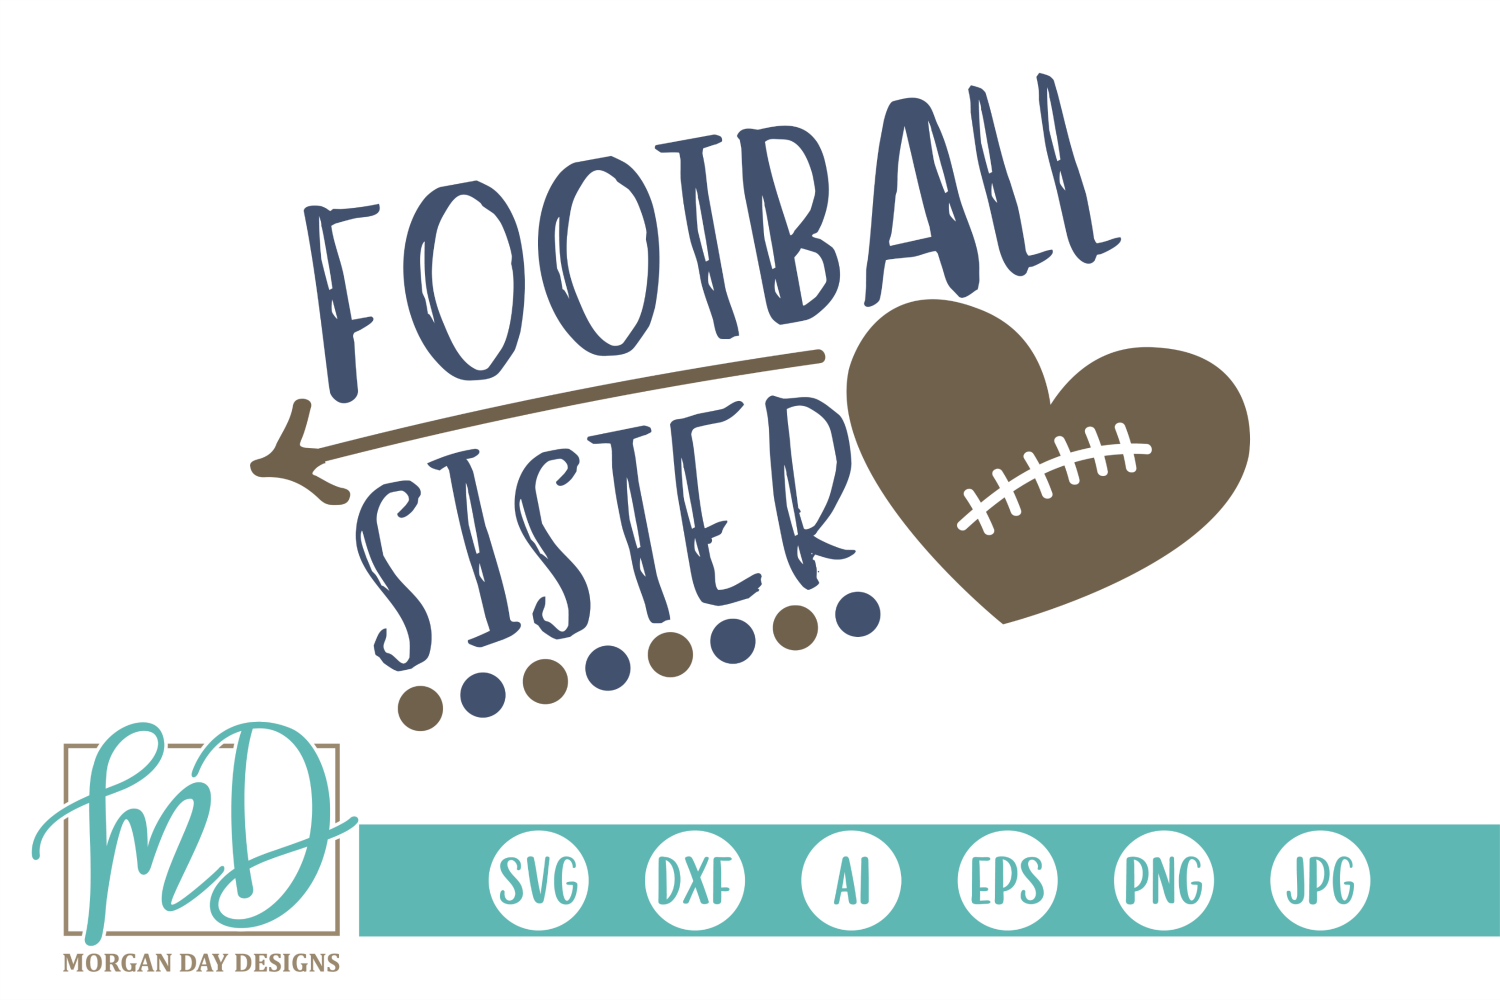 Download Free Football Sister Graphic By Morgan Day Designs Creative Fabrica for Cricut Explore, Silhouette and other cutting machines.